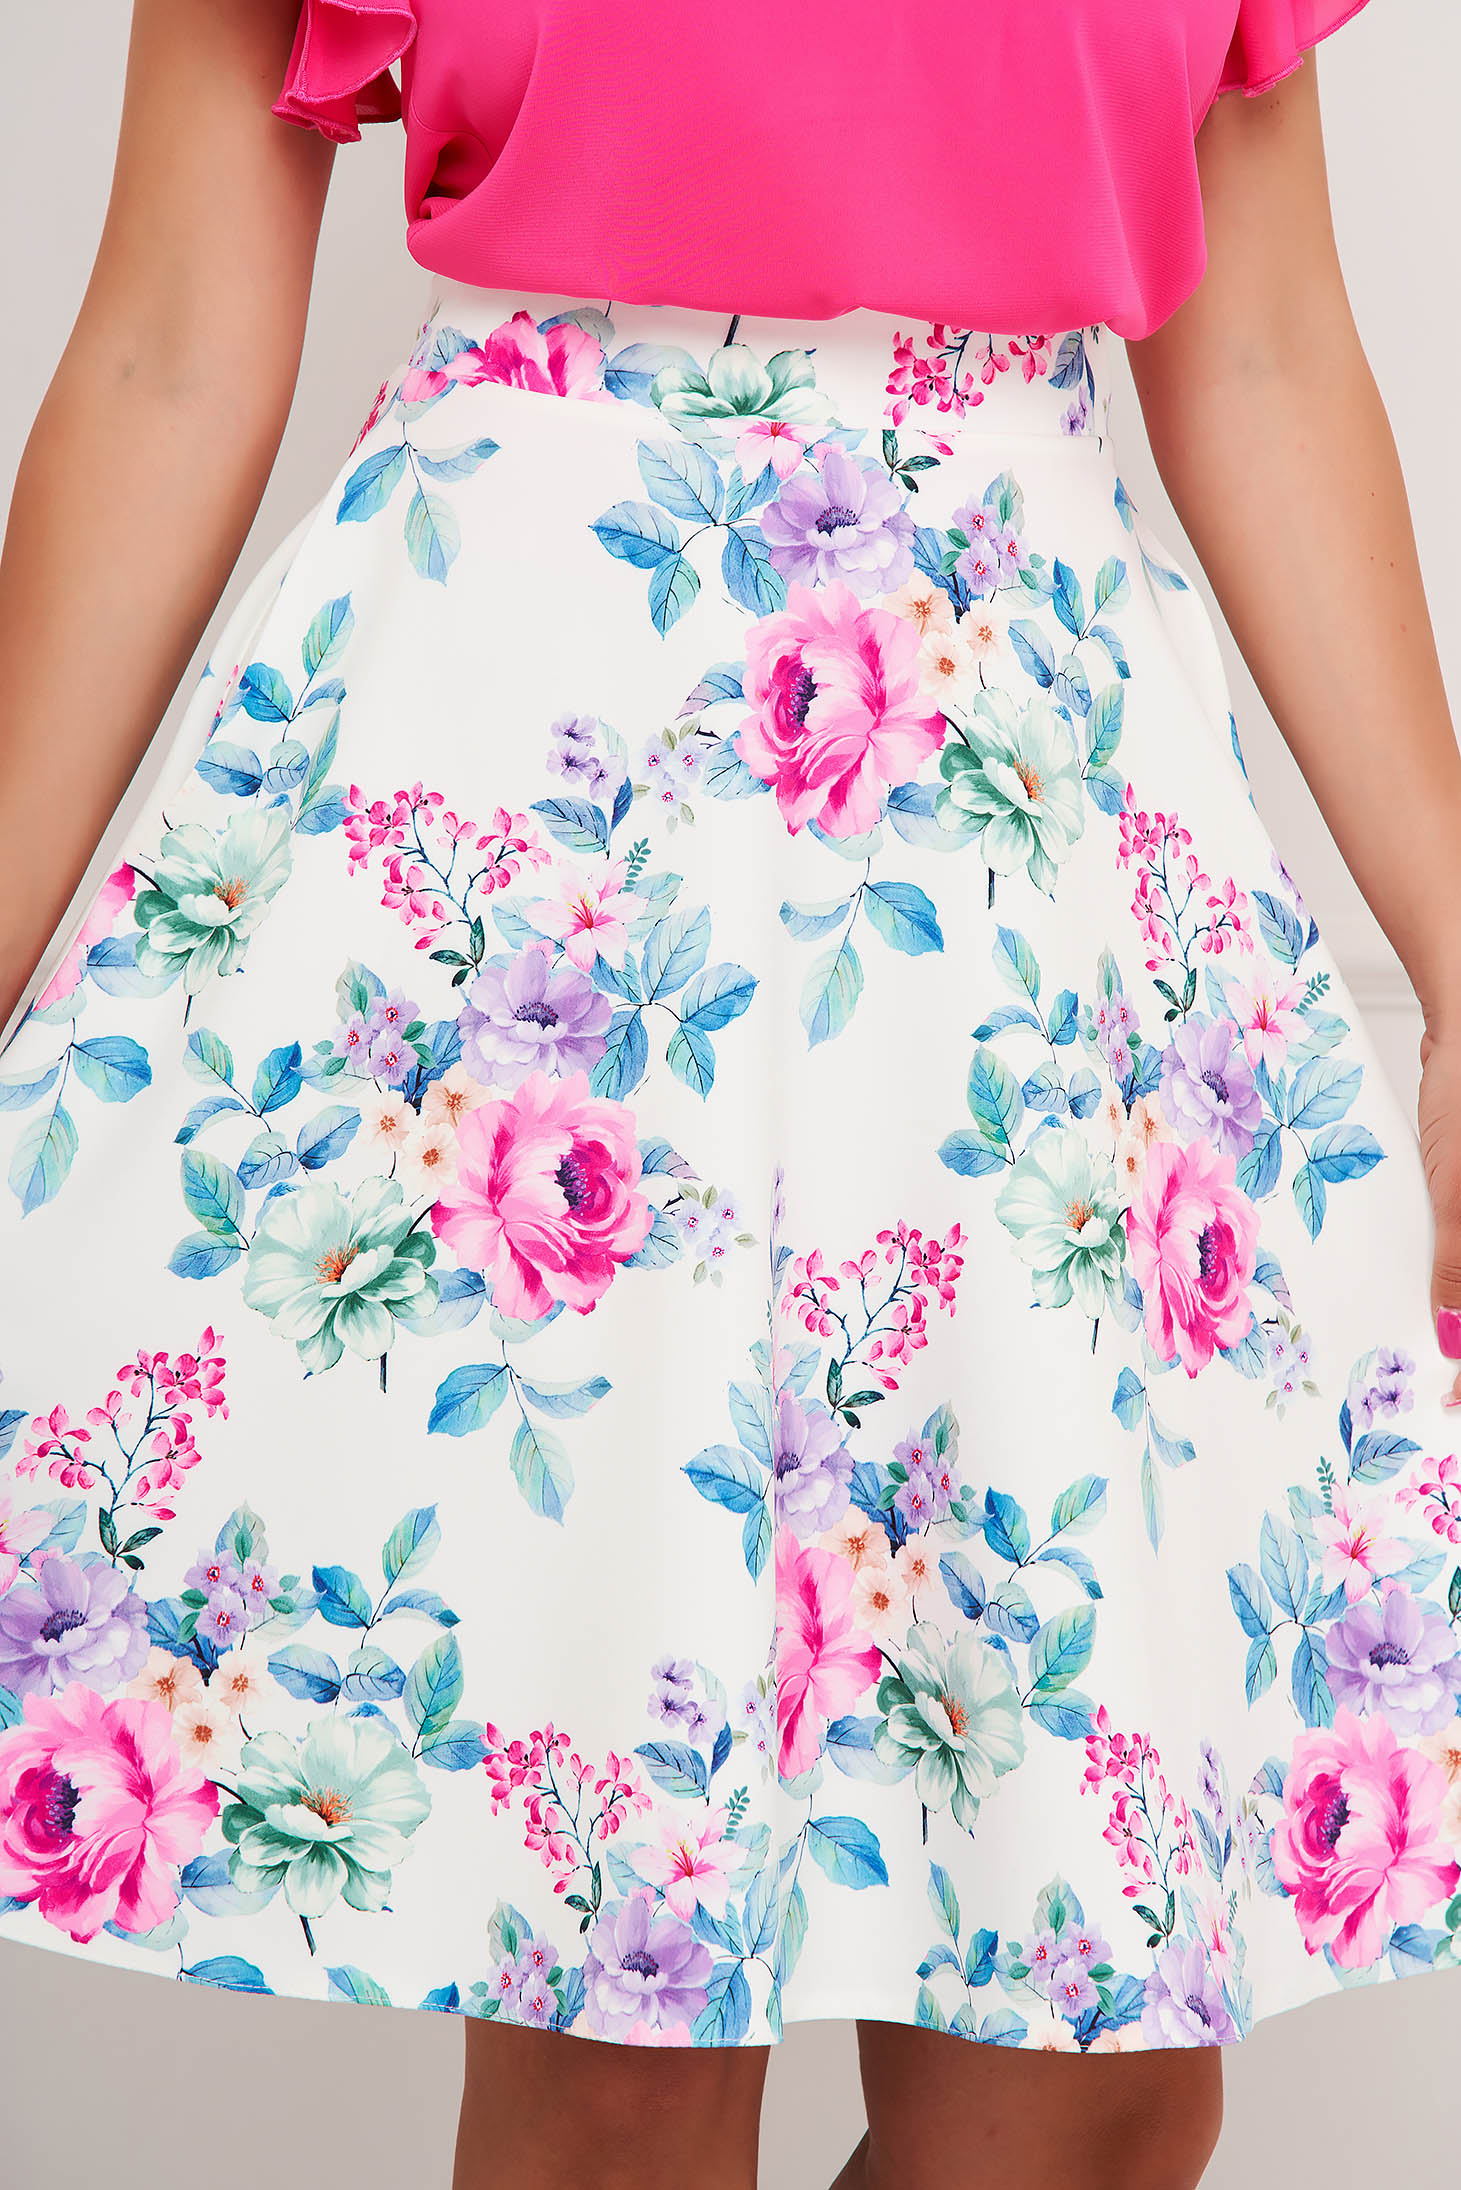 StarShinerS skirt midi with floral print with pockets cloche